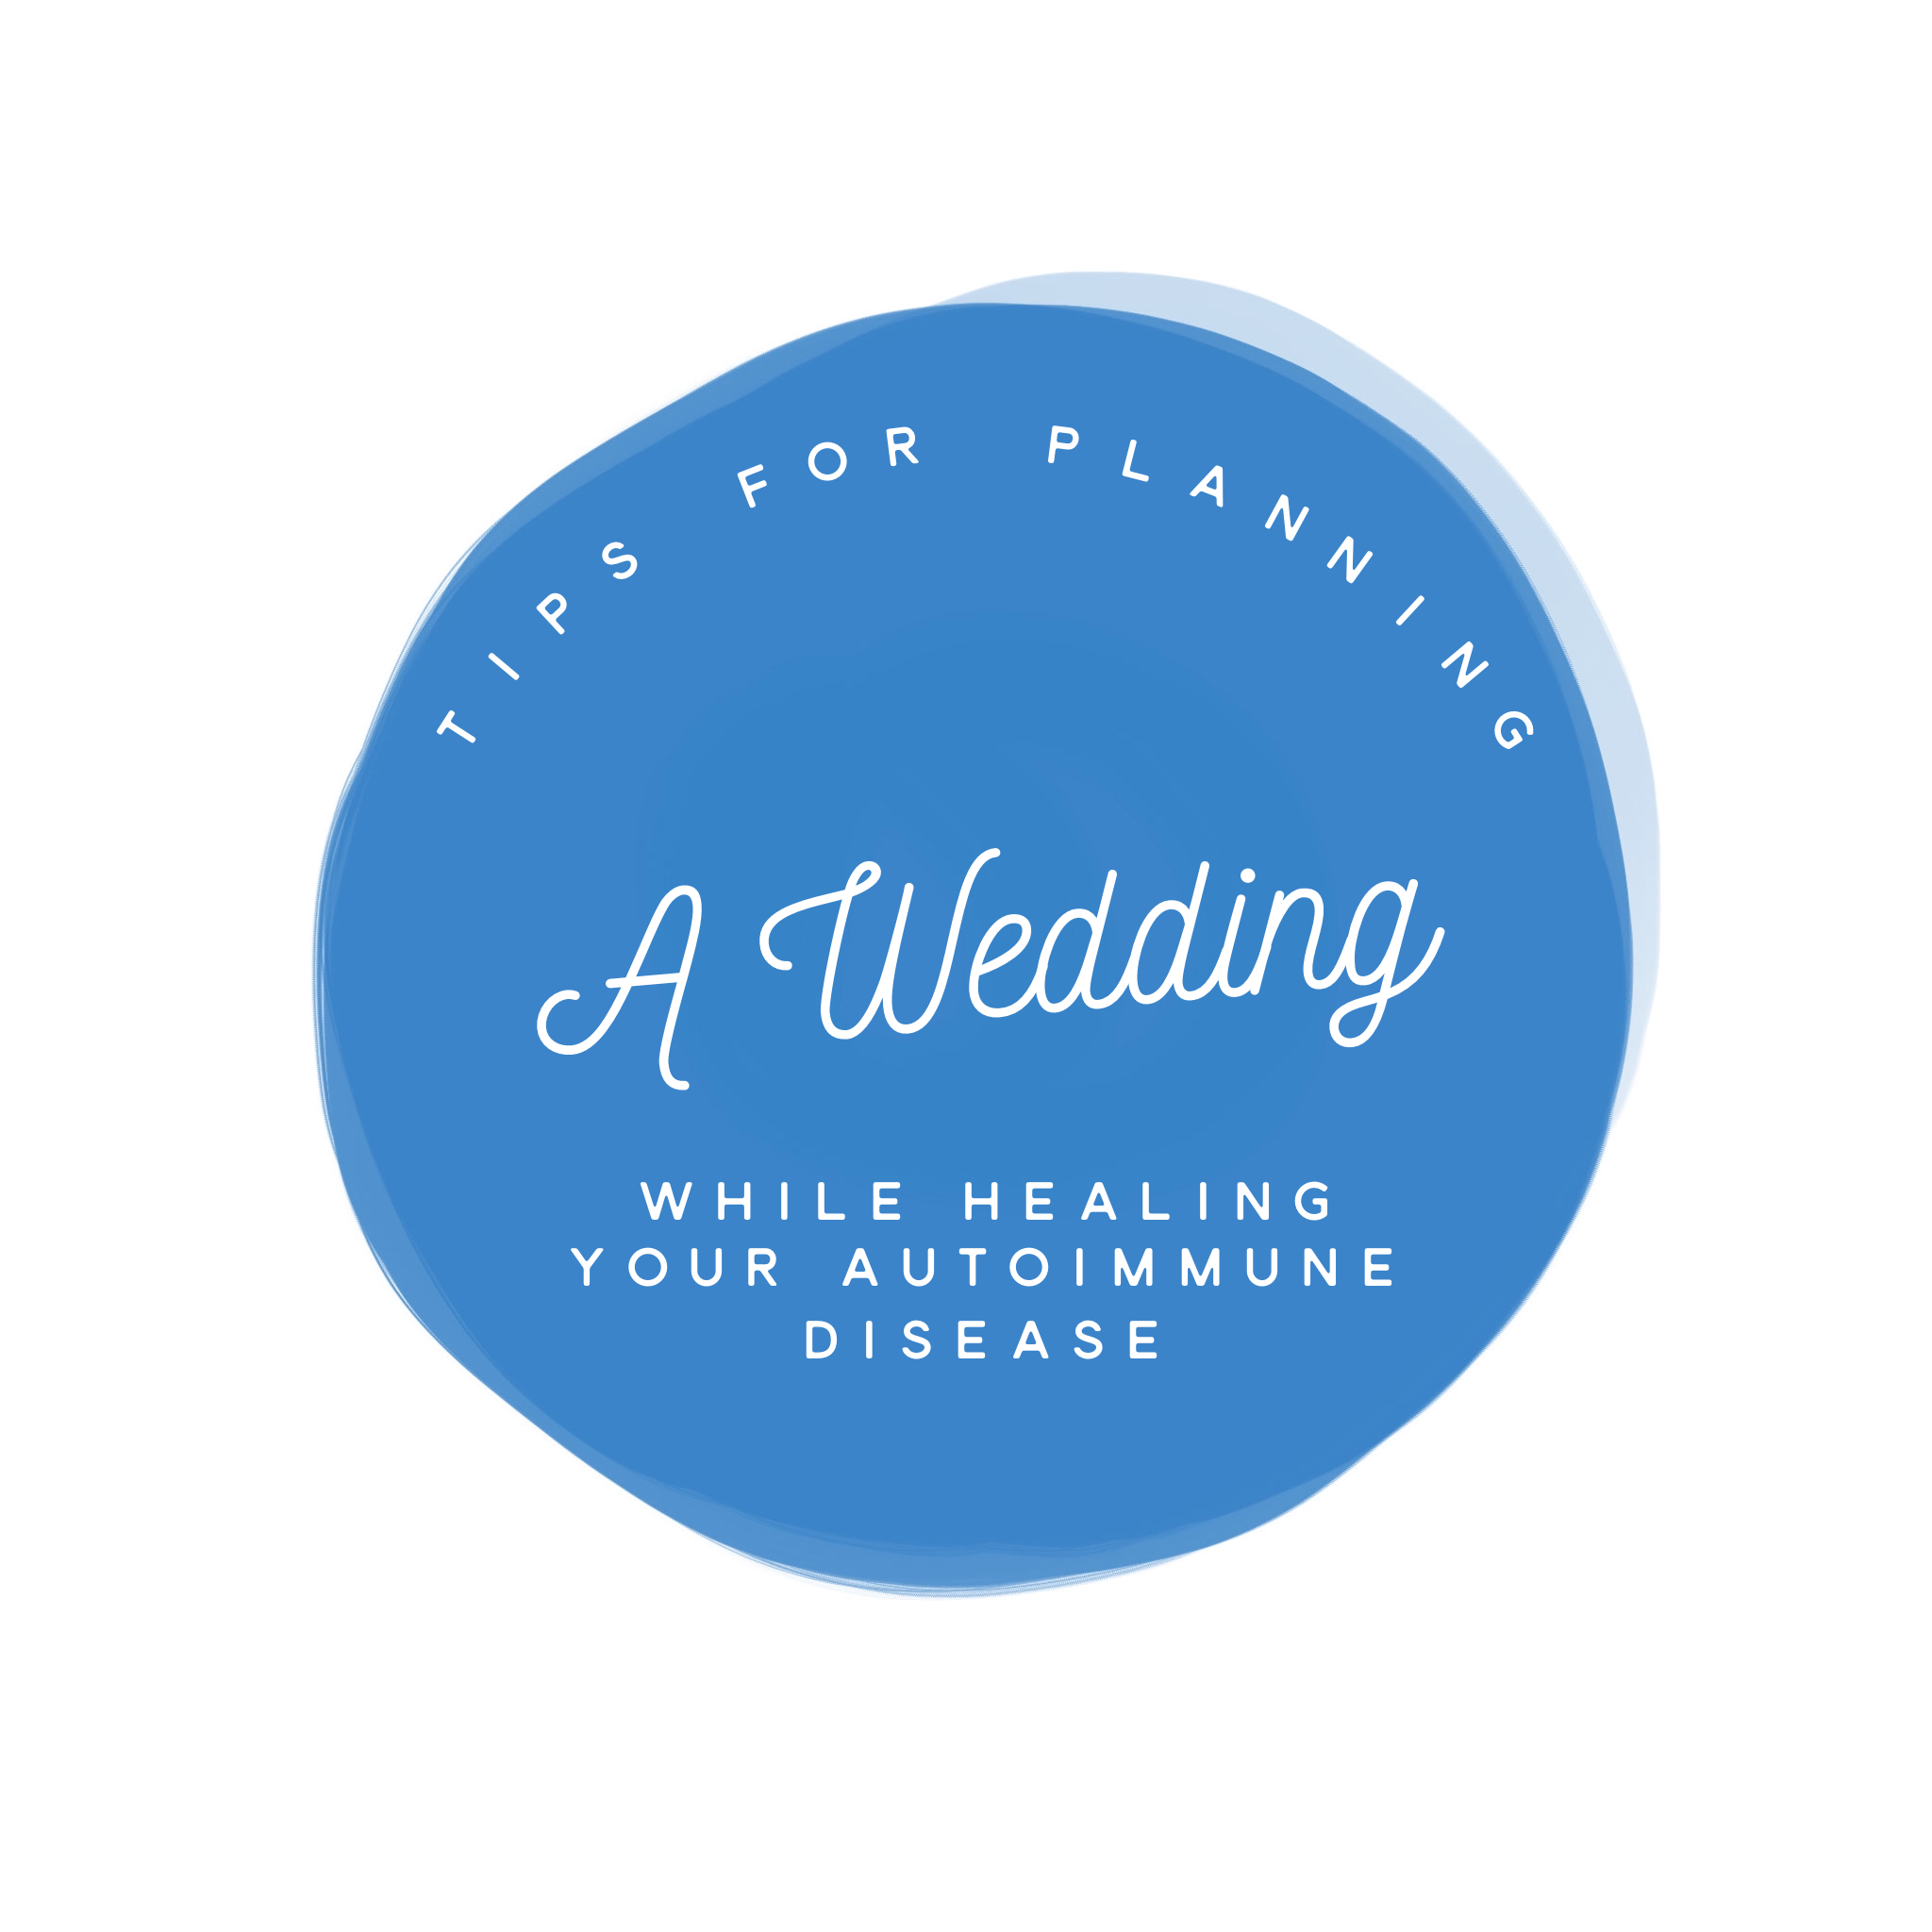 Tips for planning a wedding with an autoimmune disease